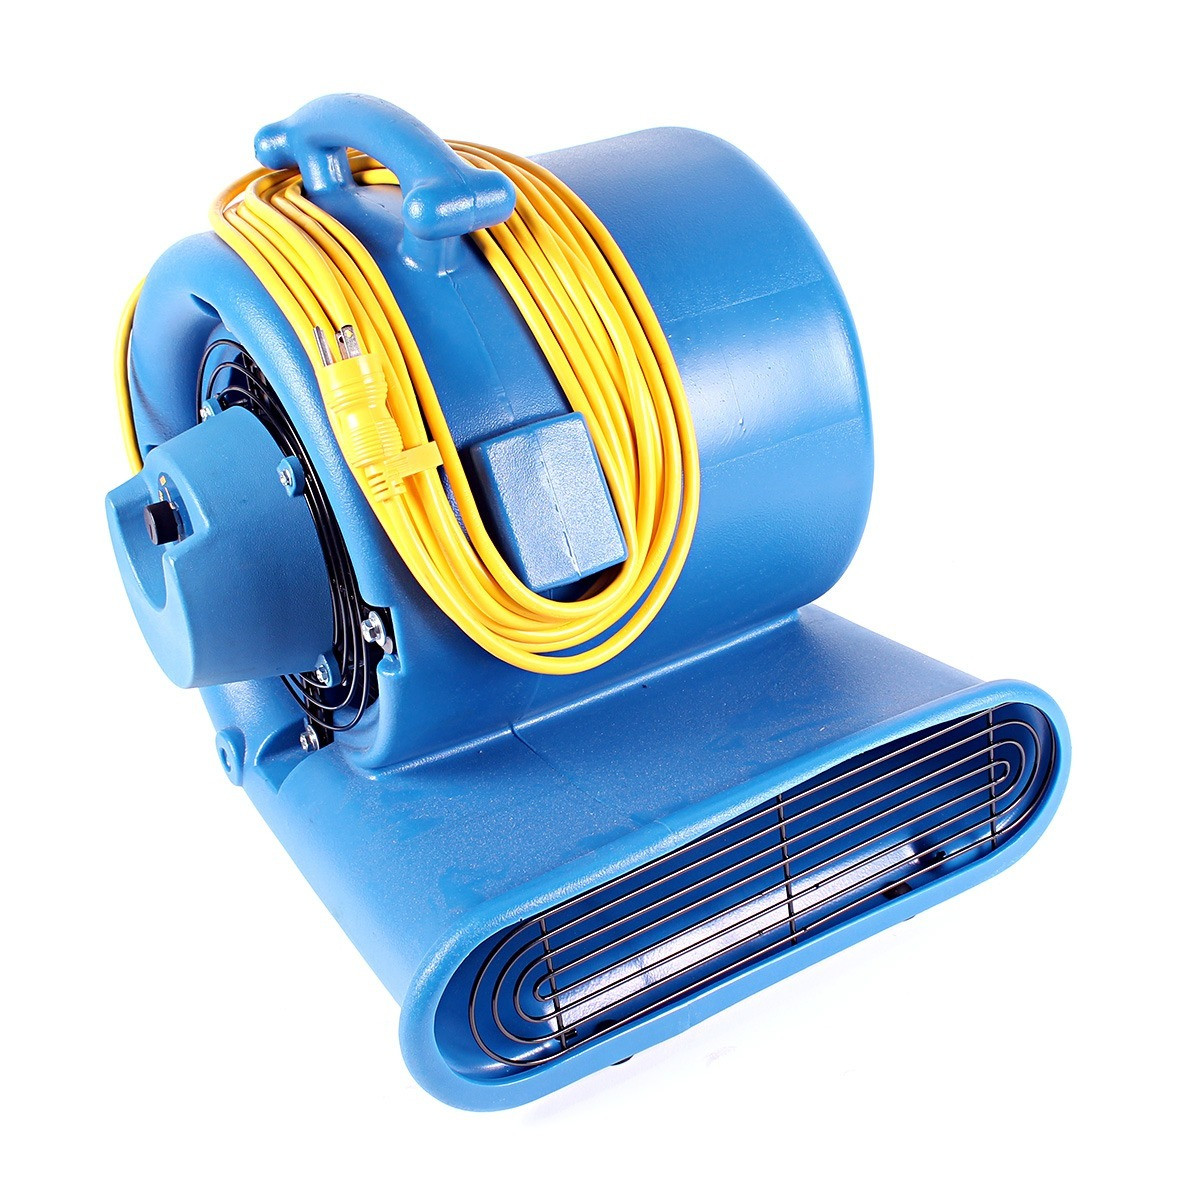 Air Moving Fans : Trusted clean cfm speed air mover fan